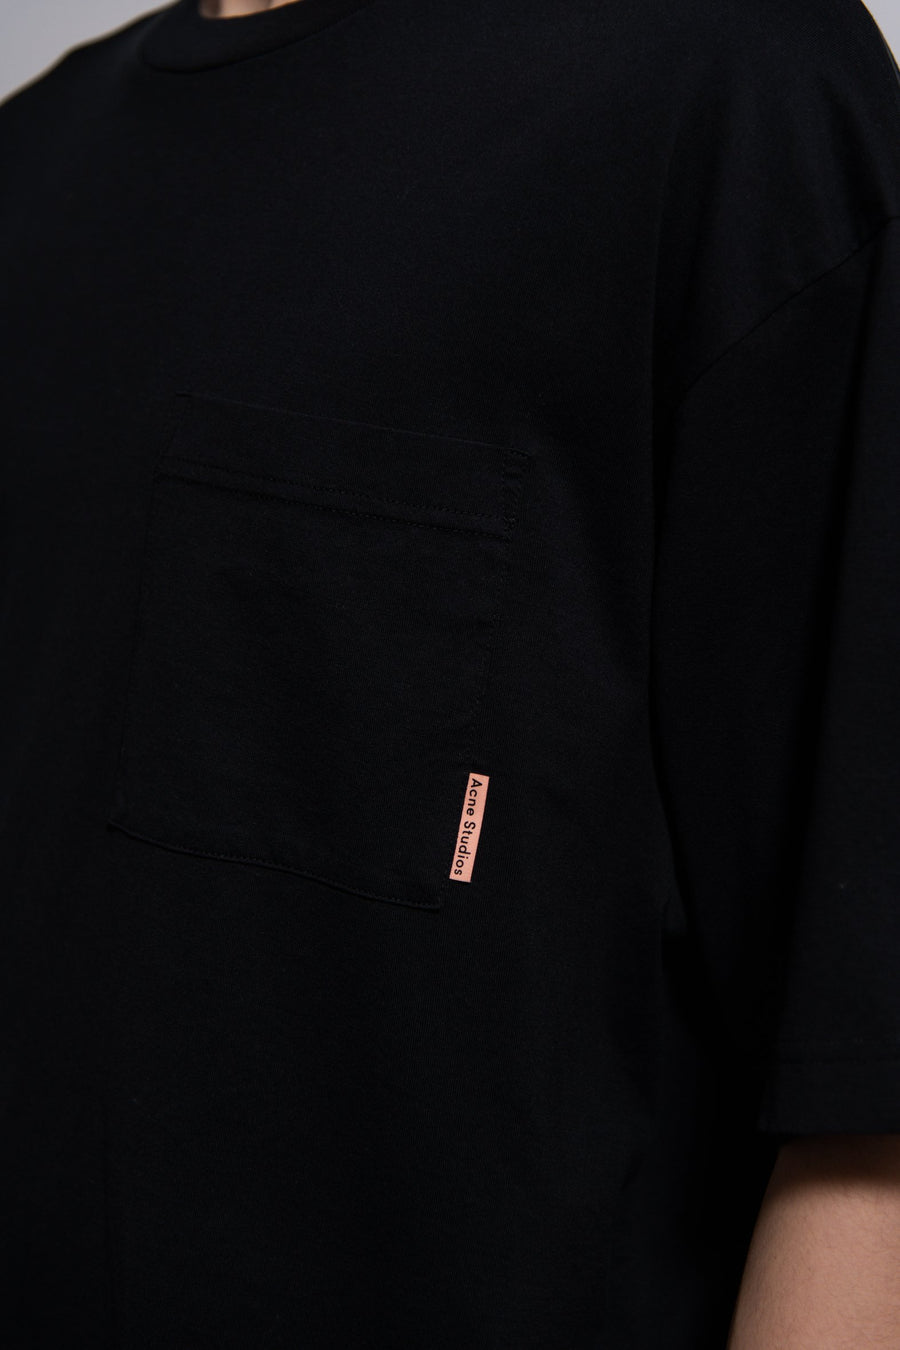 Pocket Tee Black TSHI000133